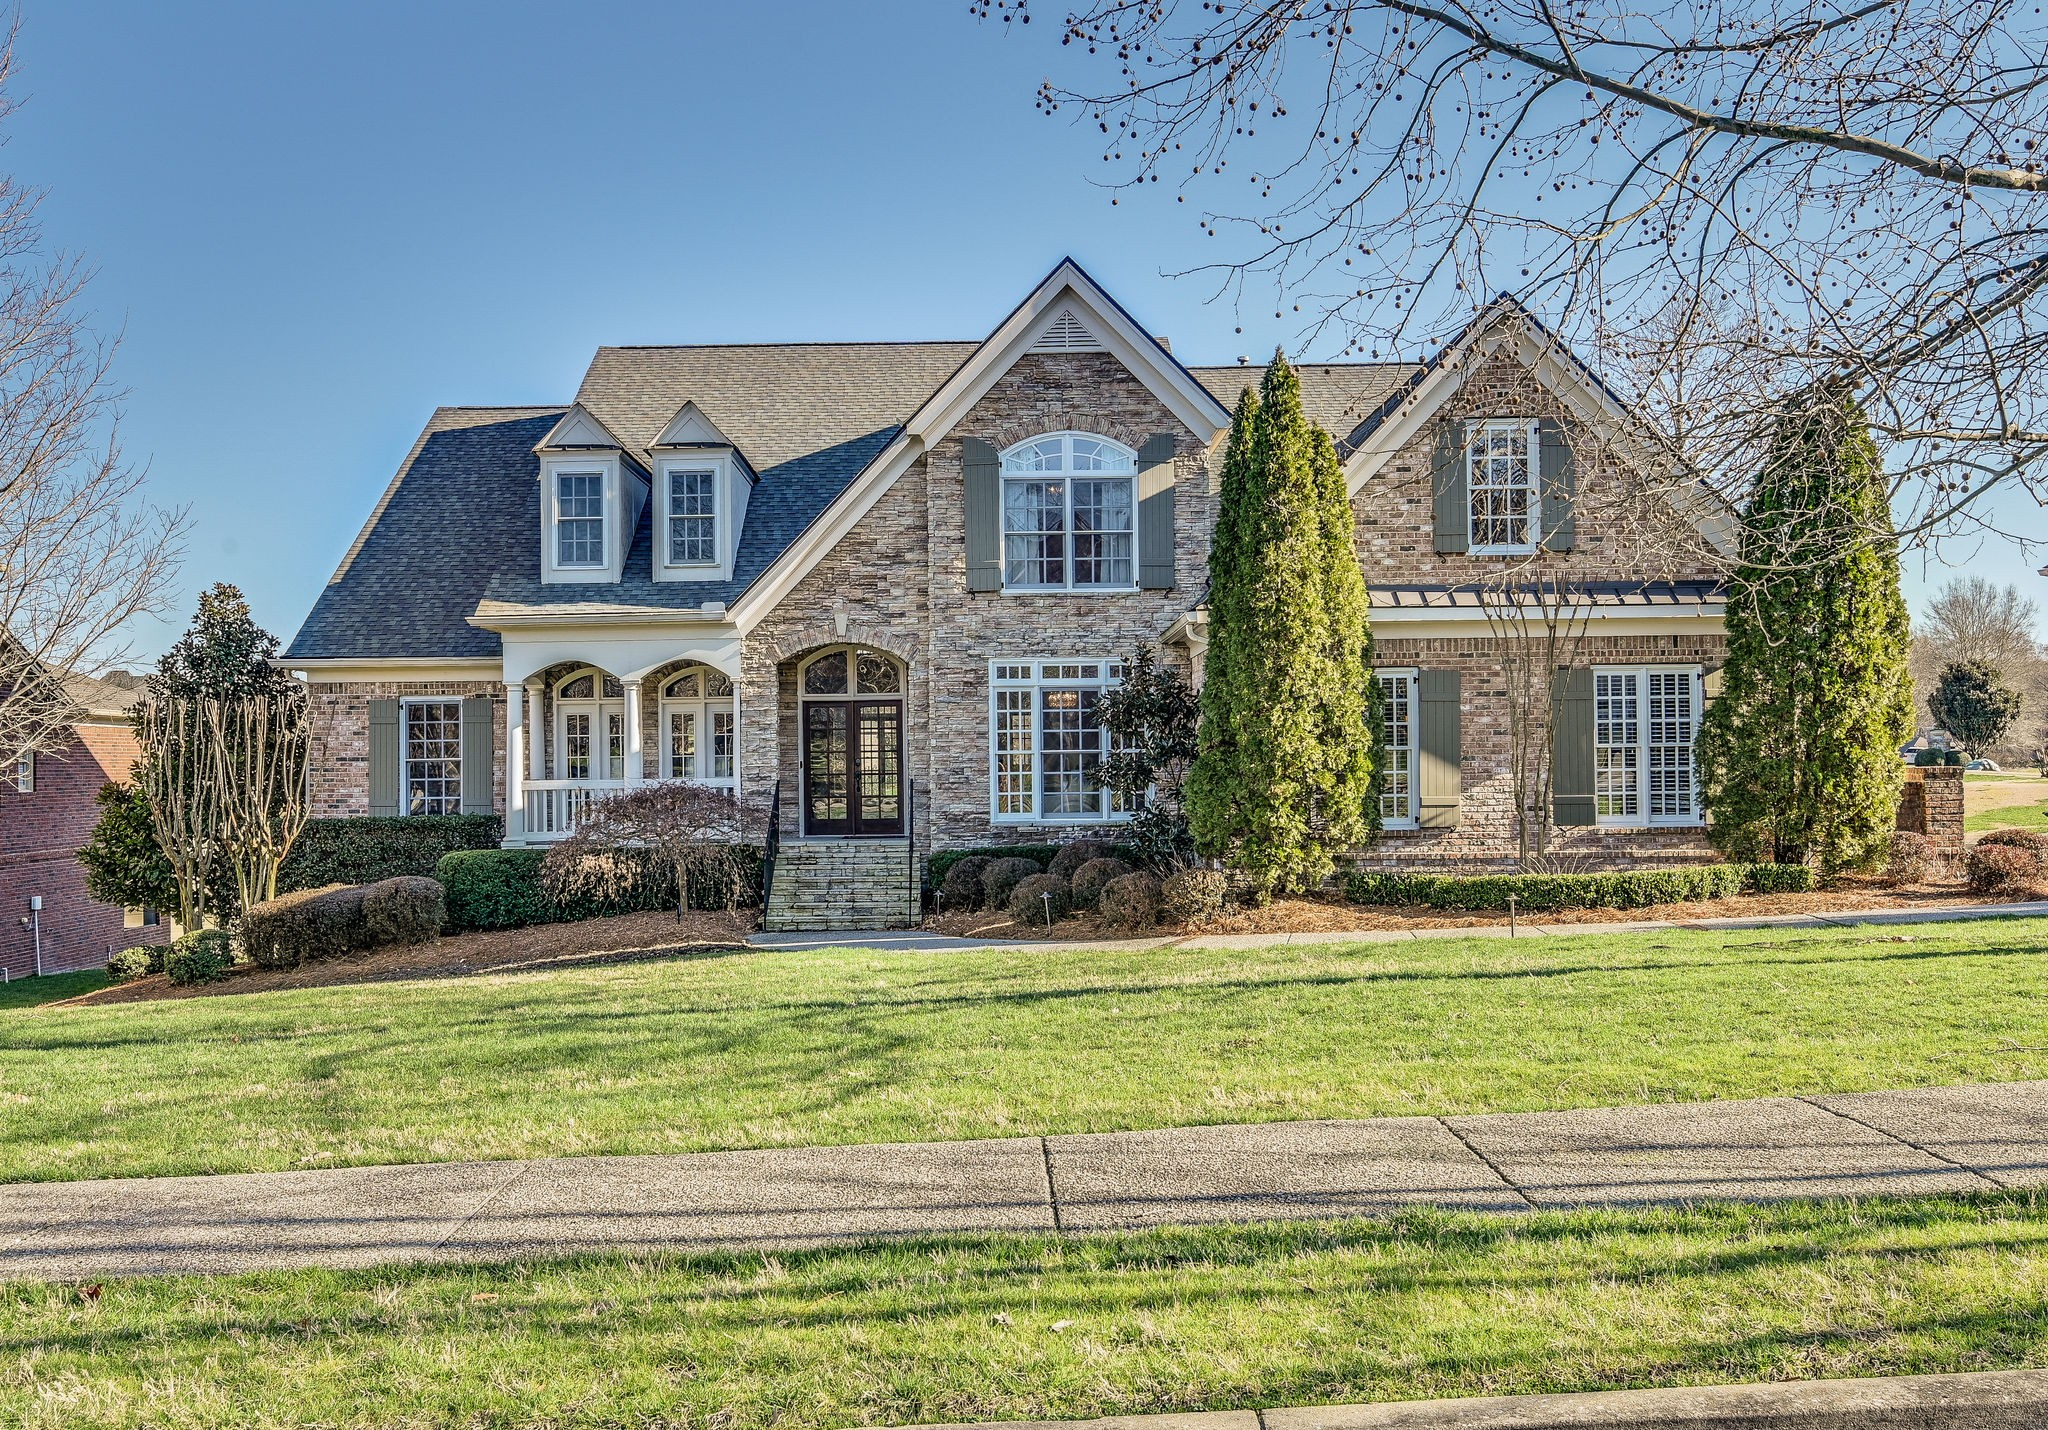 16 Angel Trce, Brentwood, TN 37027 - Brentwood, TN real estate listing